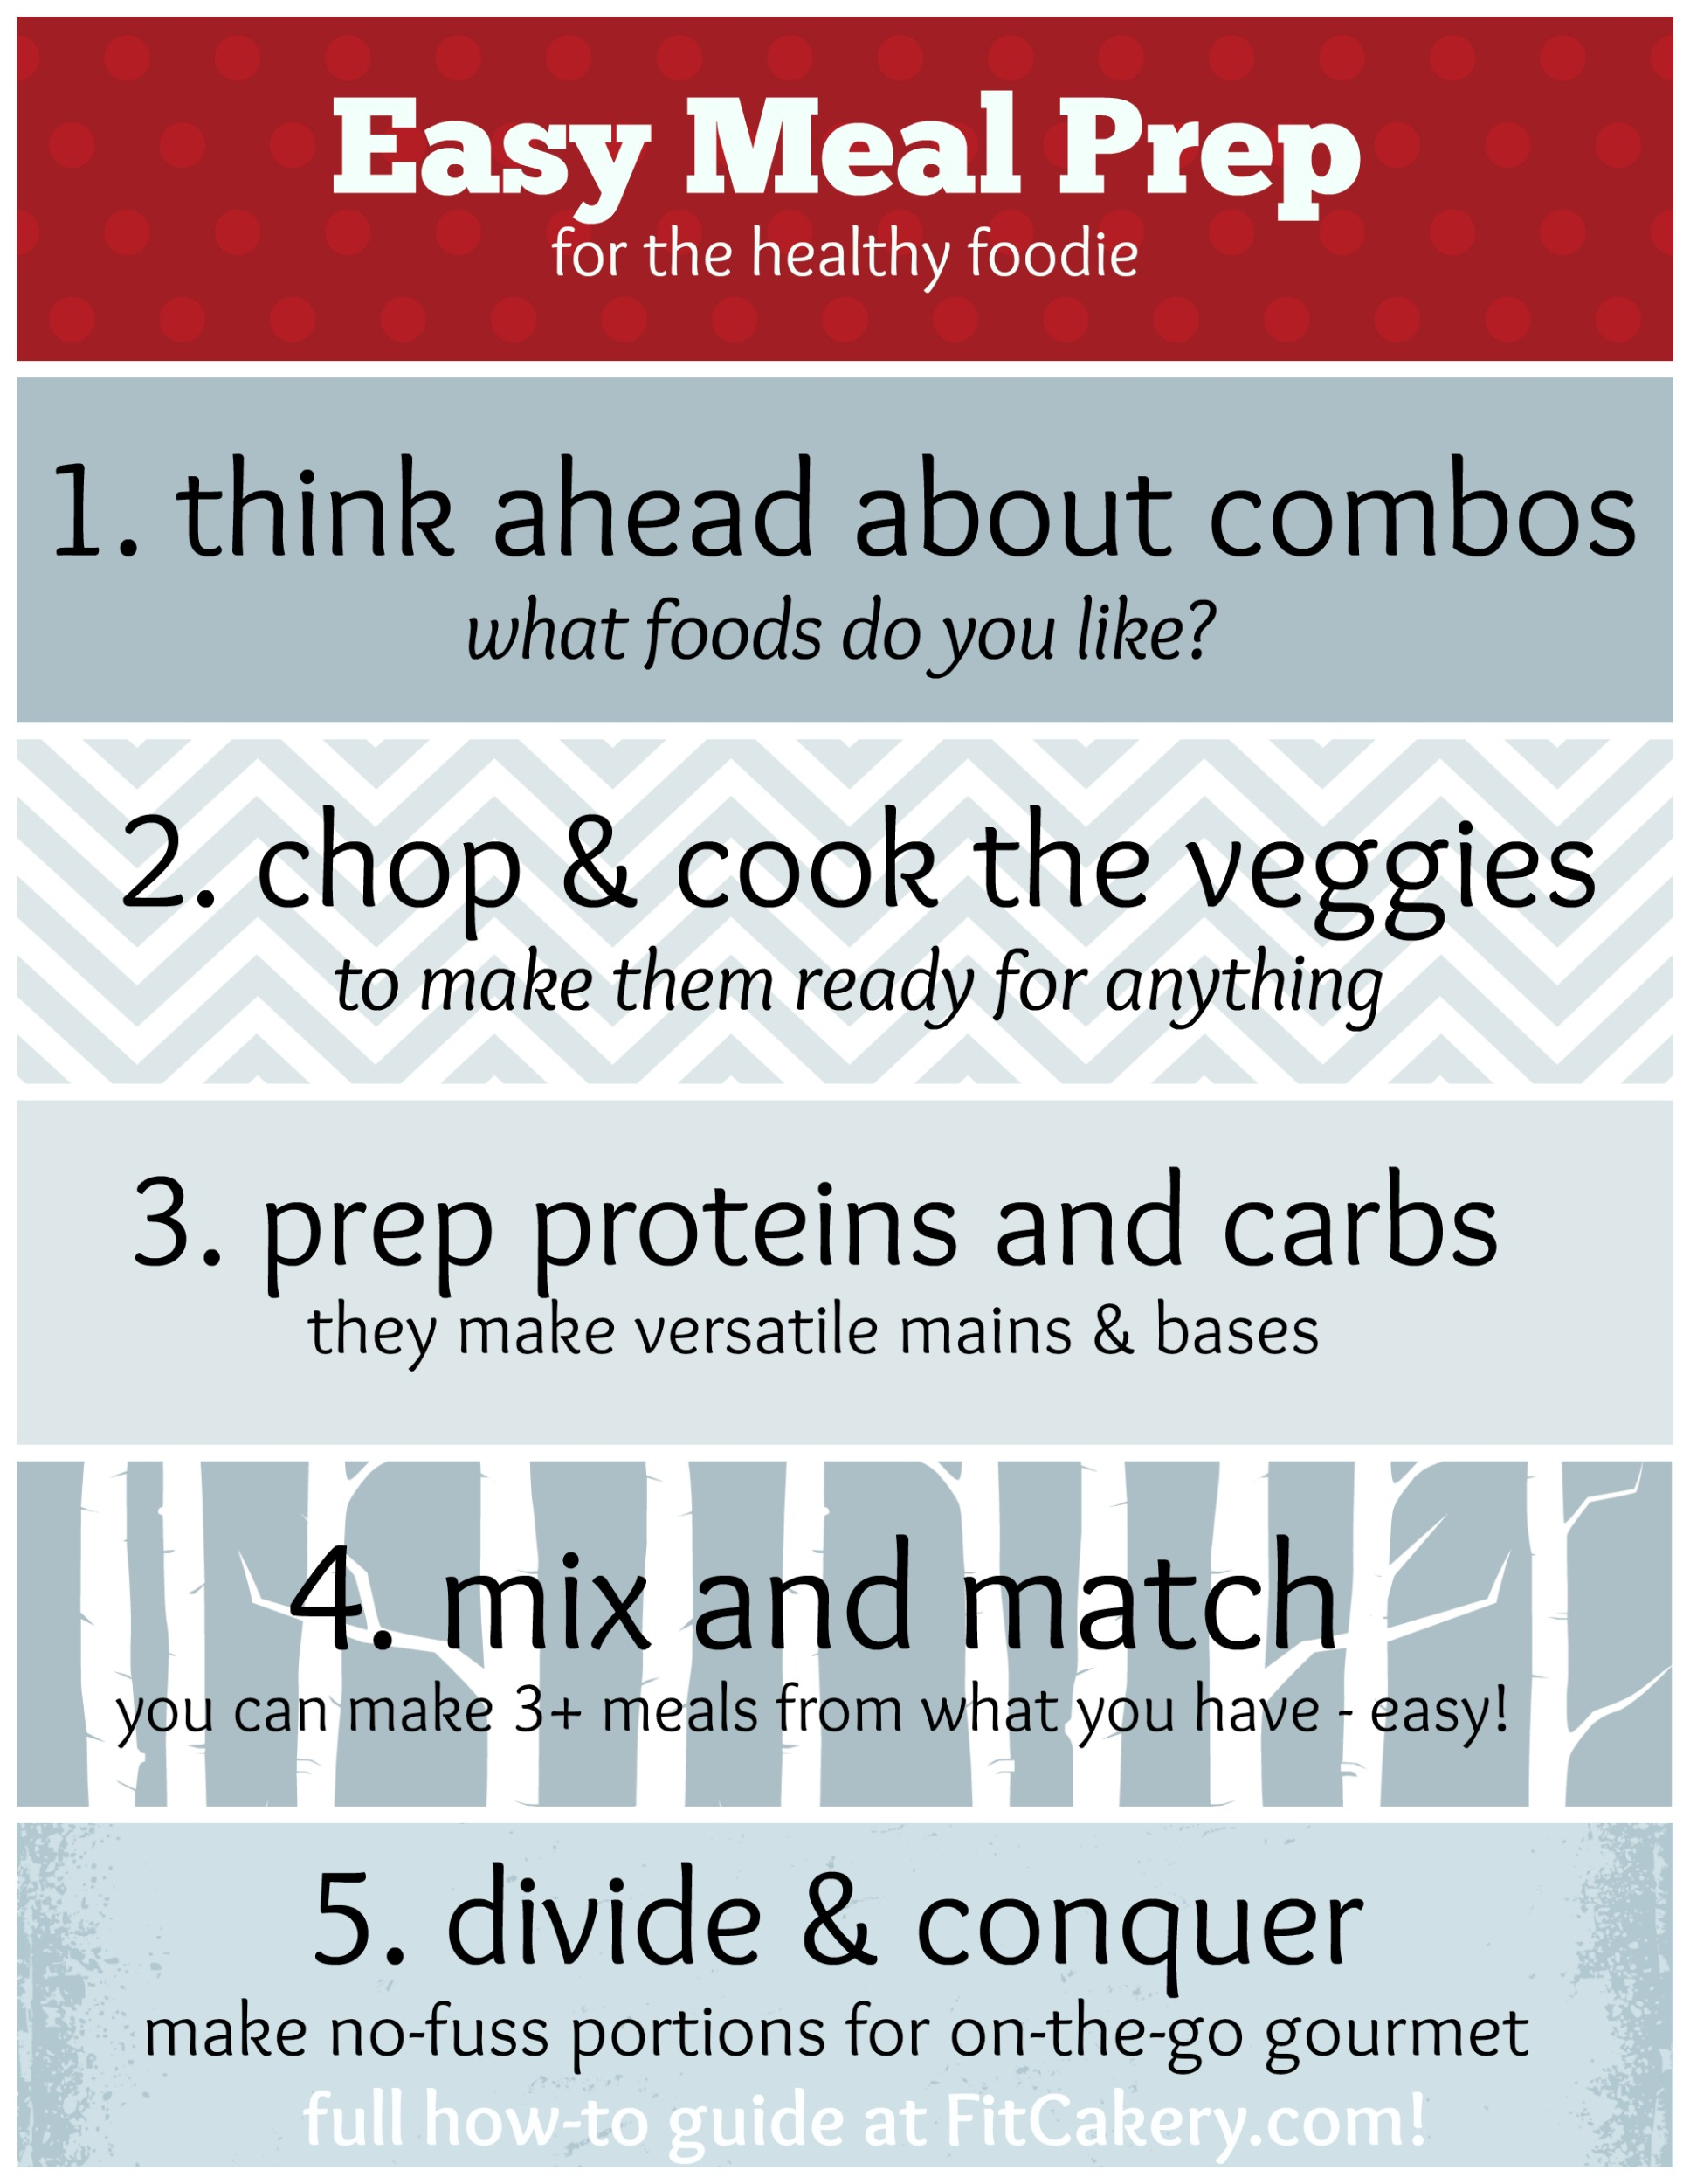 The best way to start your healthy meal prep is to have a game plan! Full details & subscribe for more like this at FitCakery.com!